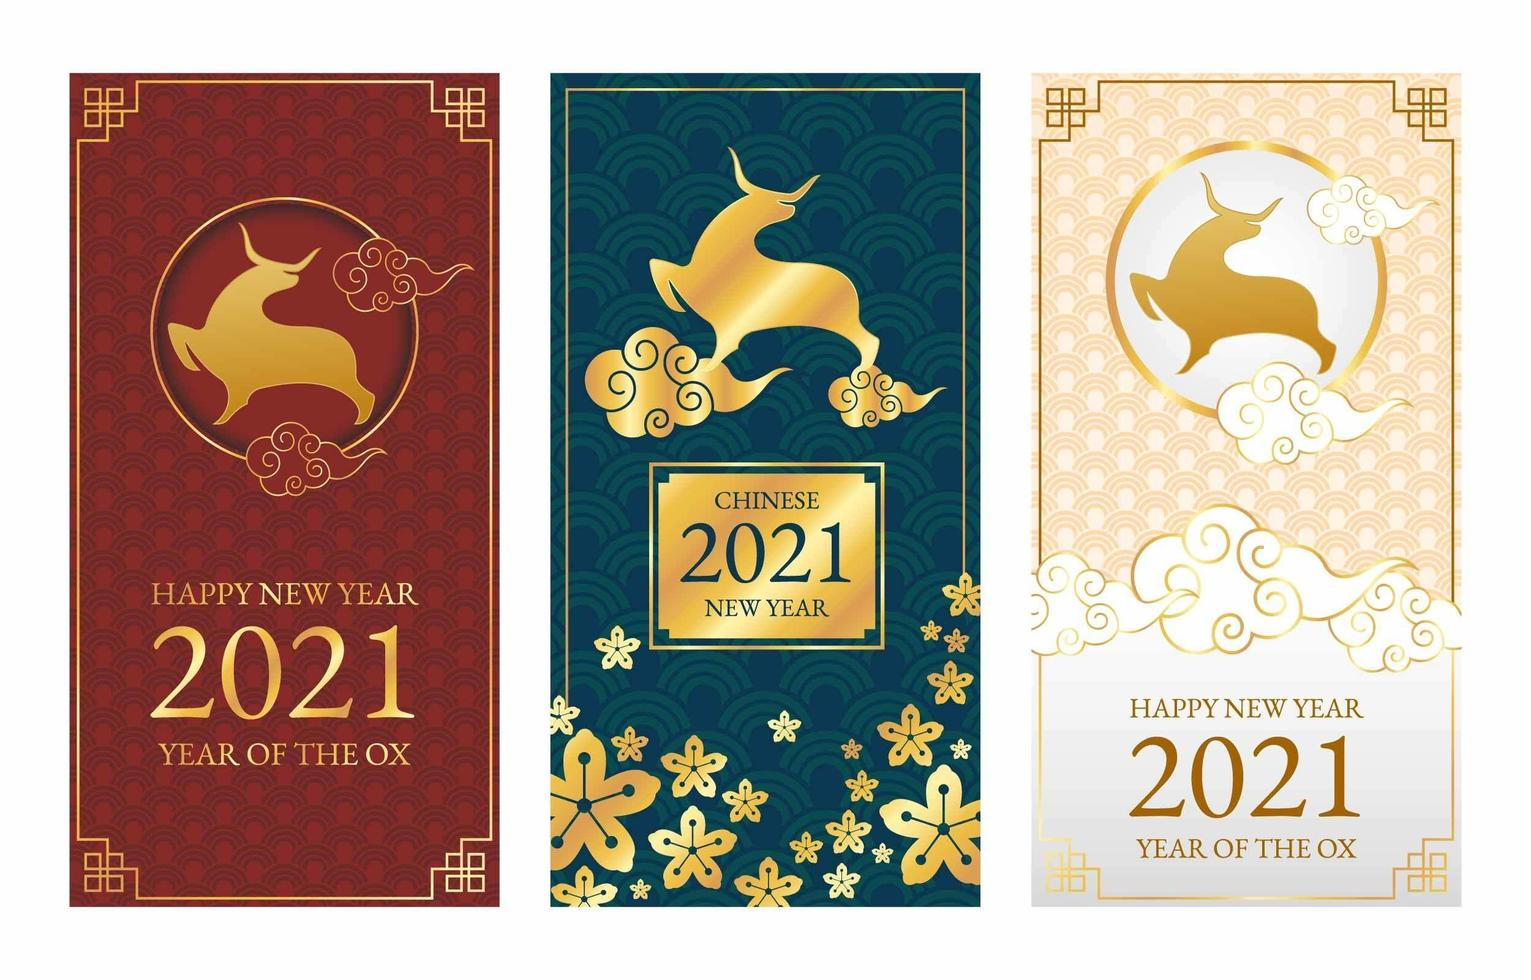 Banners of Chinese New Year 2021 vector